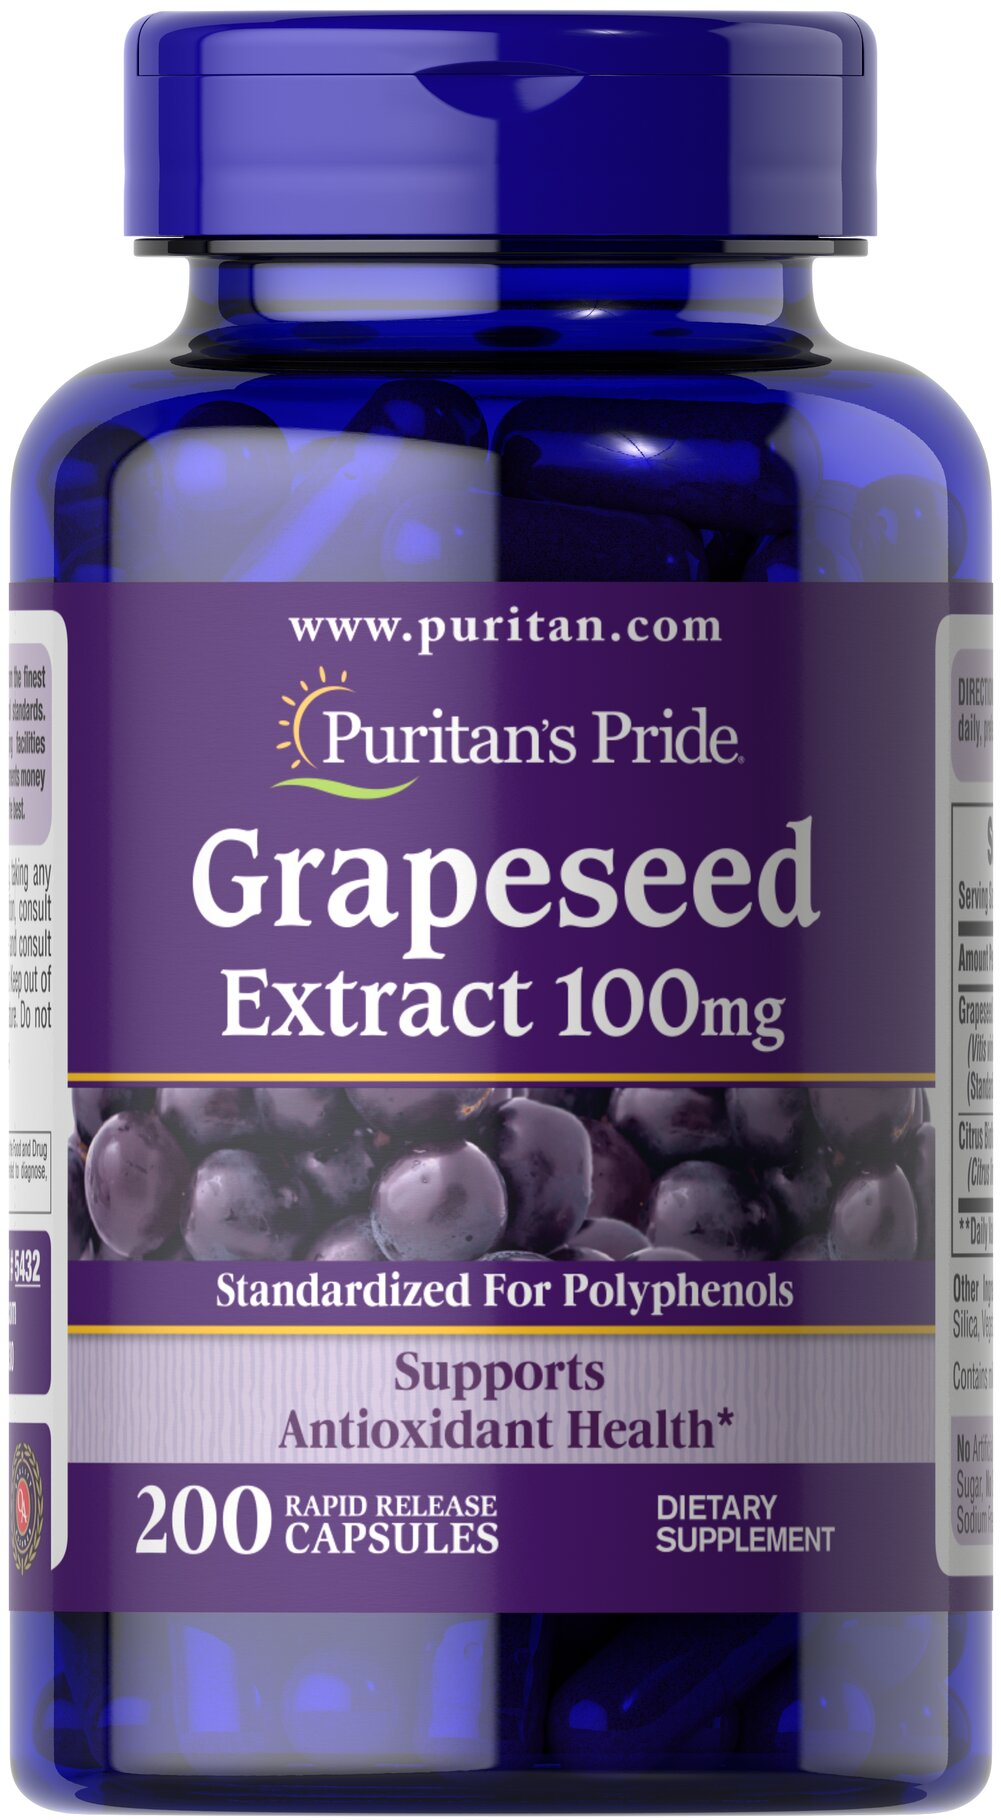 Grapeseed Extract 100 mg <p><strong></strong>Grapeseed Extract helps support antioxidant health.** Antioxidants are nutrients that help to counter the destructive nature of free radicals and assist in maintaining good health.** Grapeseed extract contains oligomeric proanthocyanidins (OPCs), which are naturally occurring bioflavonoids. Standardized to contain 50% Polyphenols. Adults can take one capsule three times daily.</p> 200 Capsules 100 mg $36.99